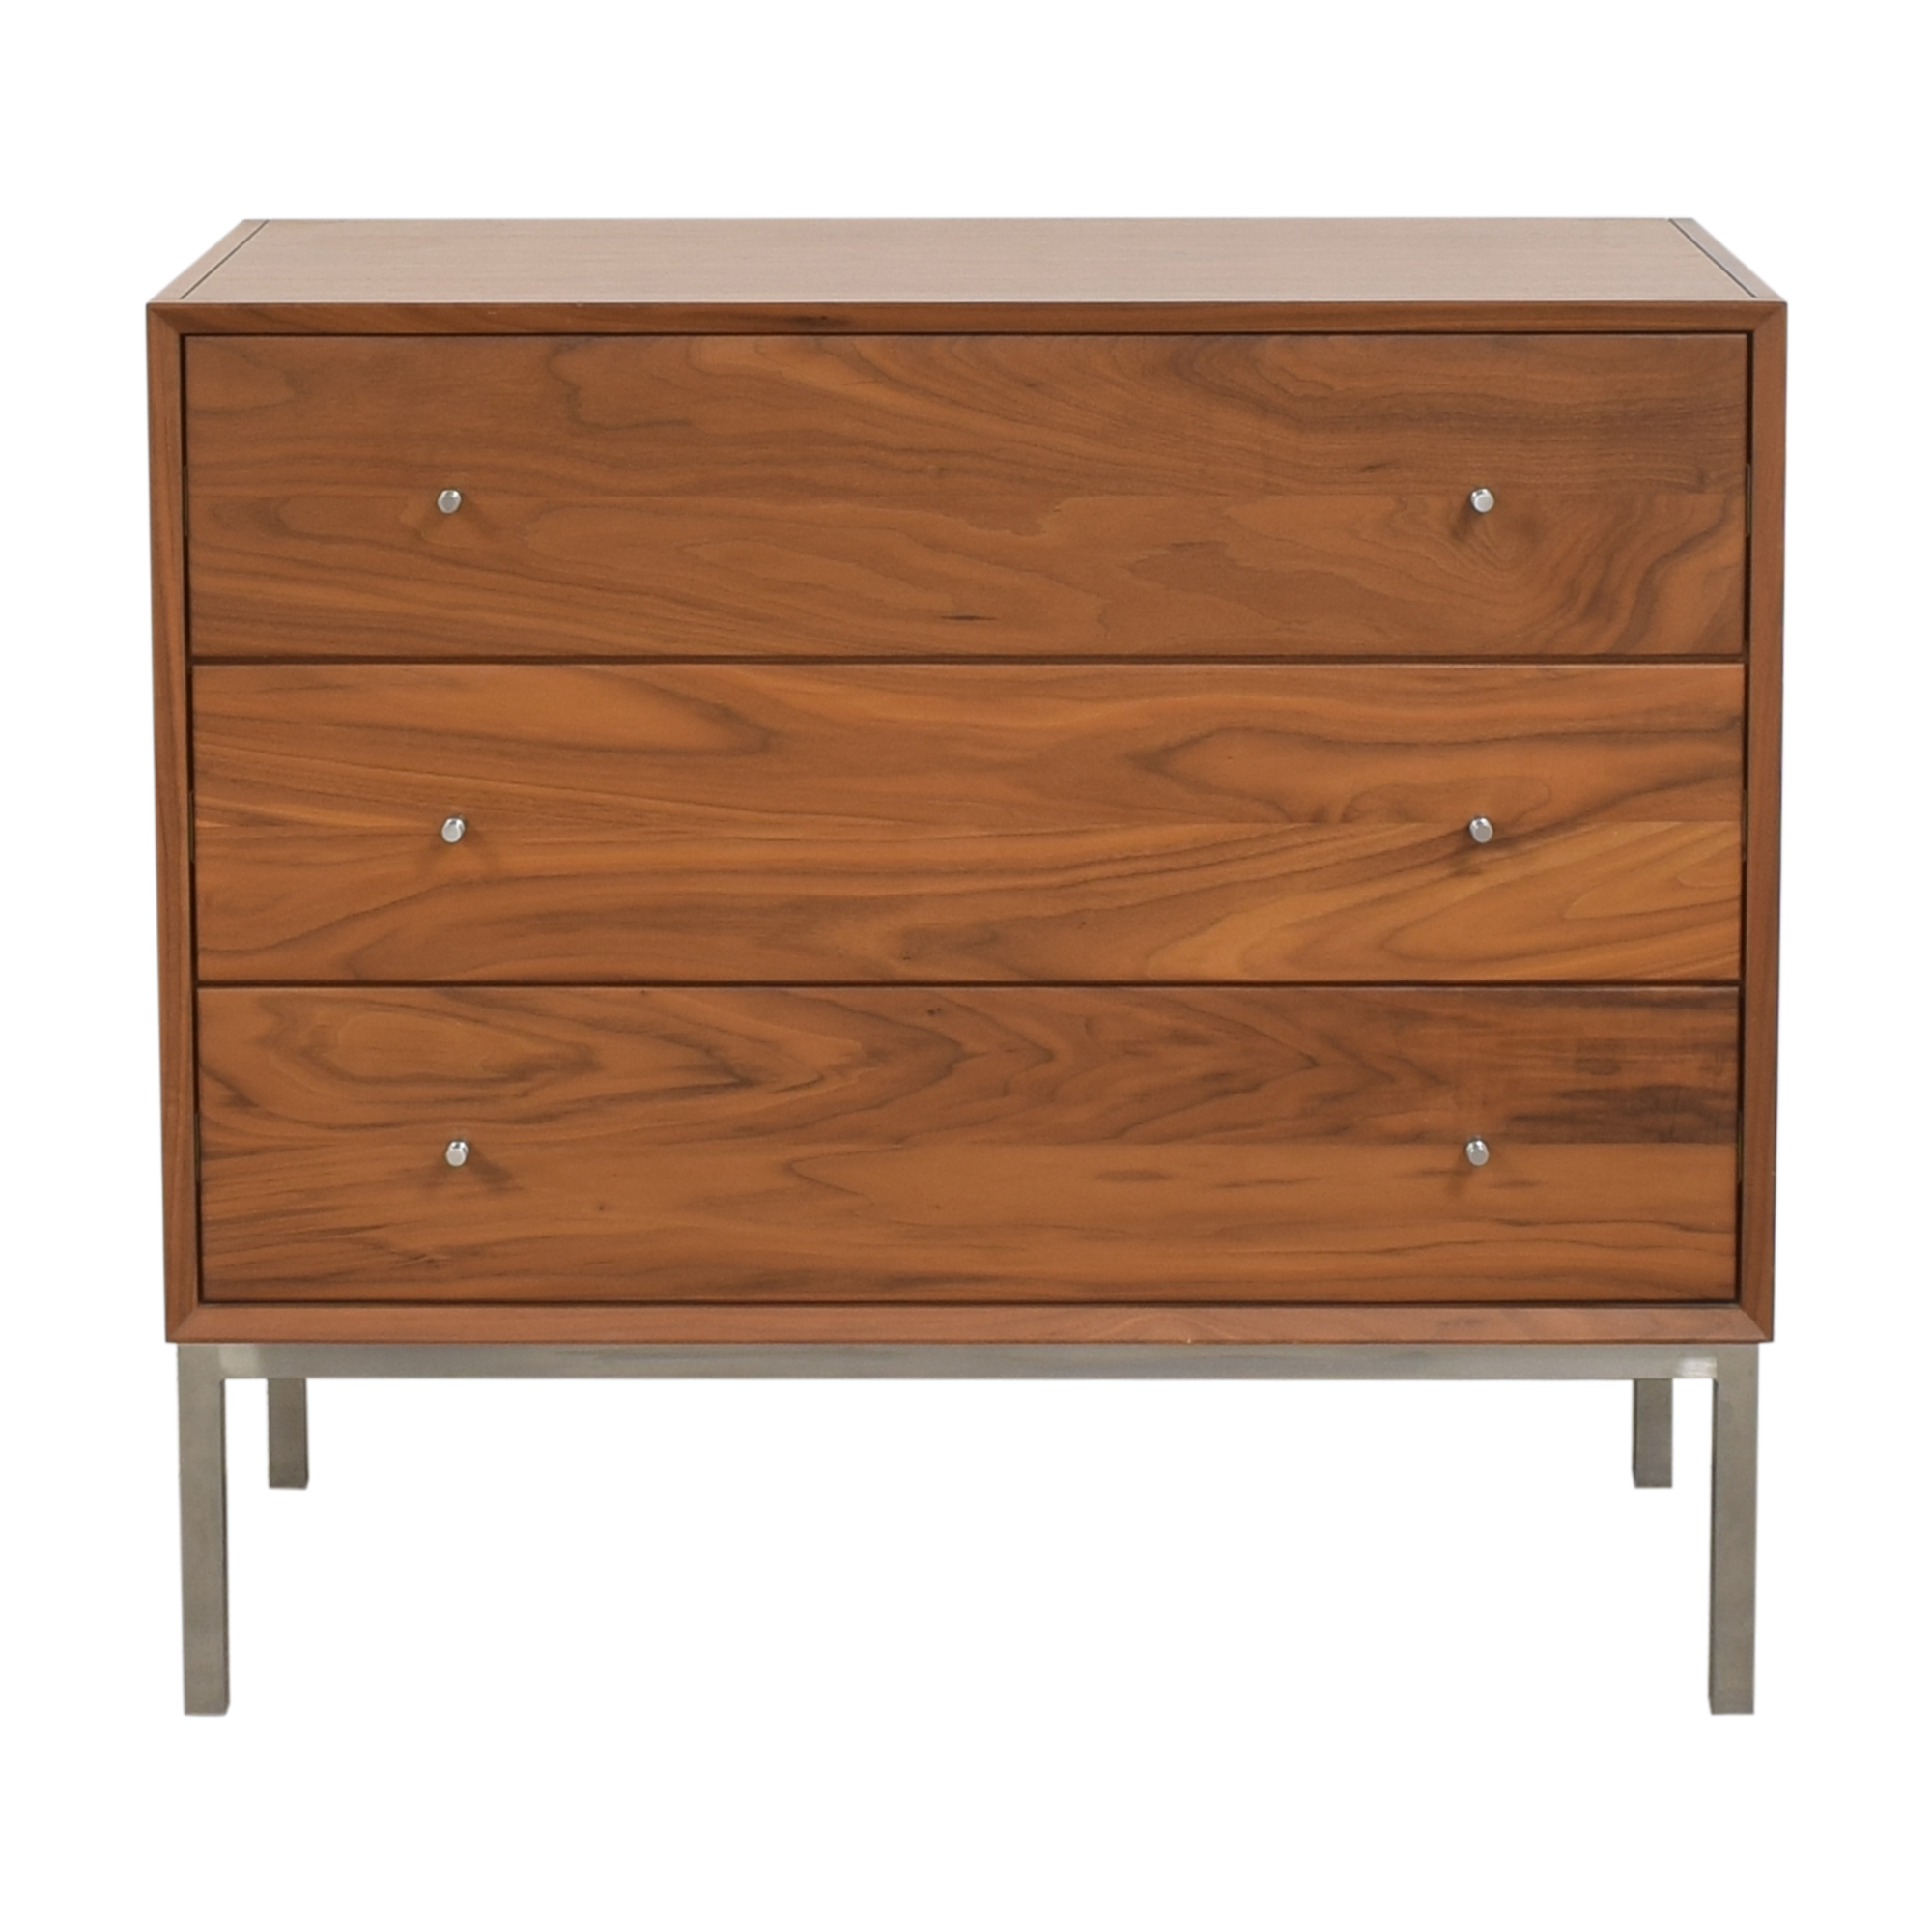 shop Room & Board Delano Three Drawer Dresser Room & Board Storage